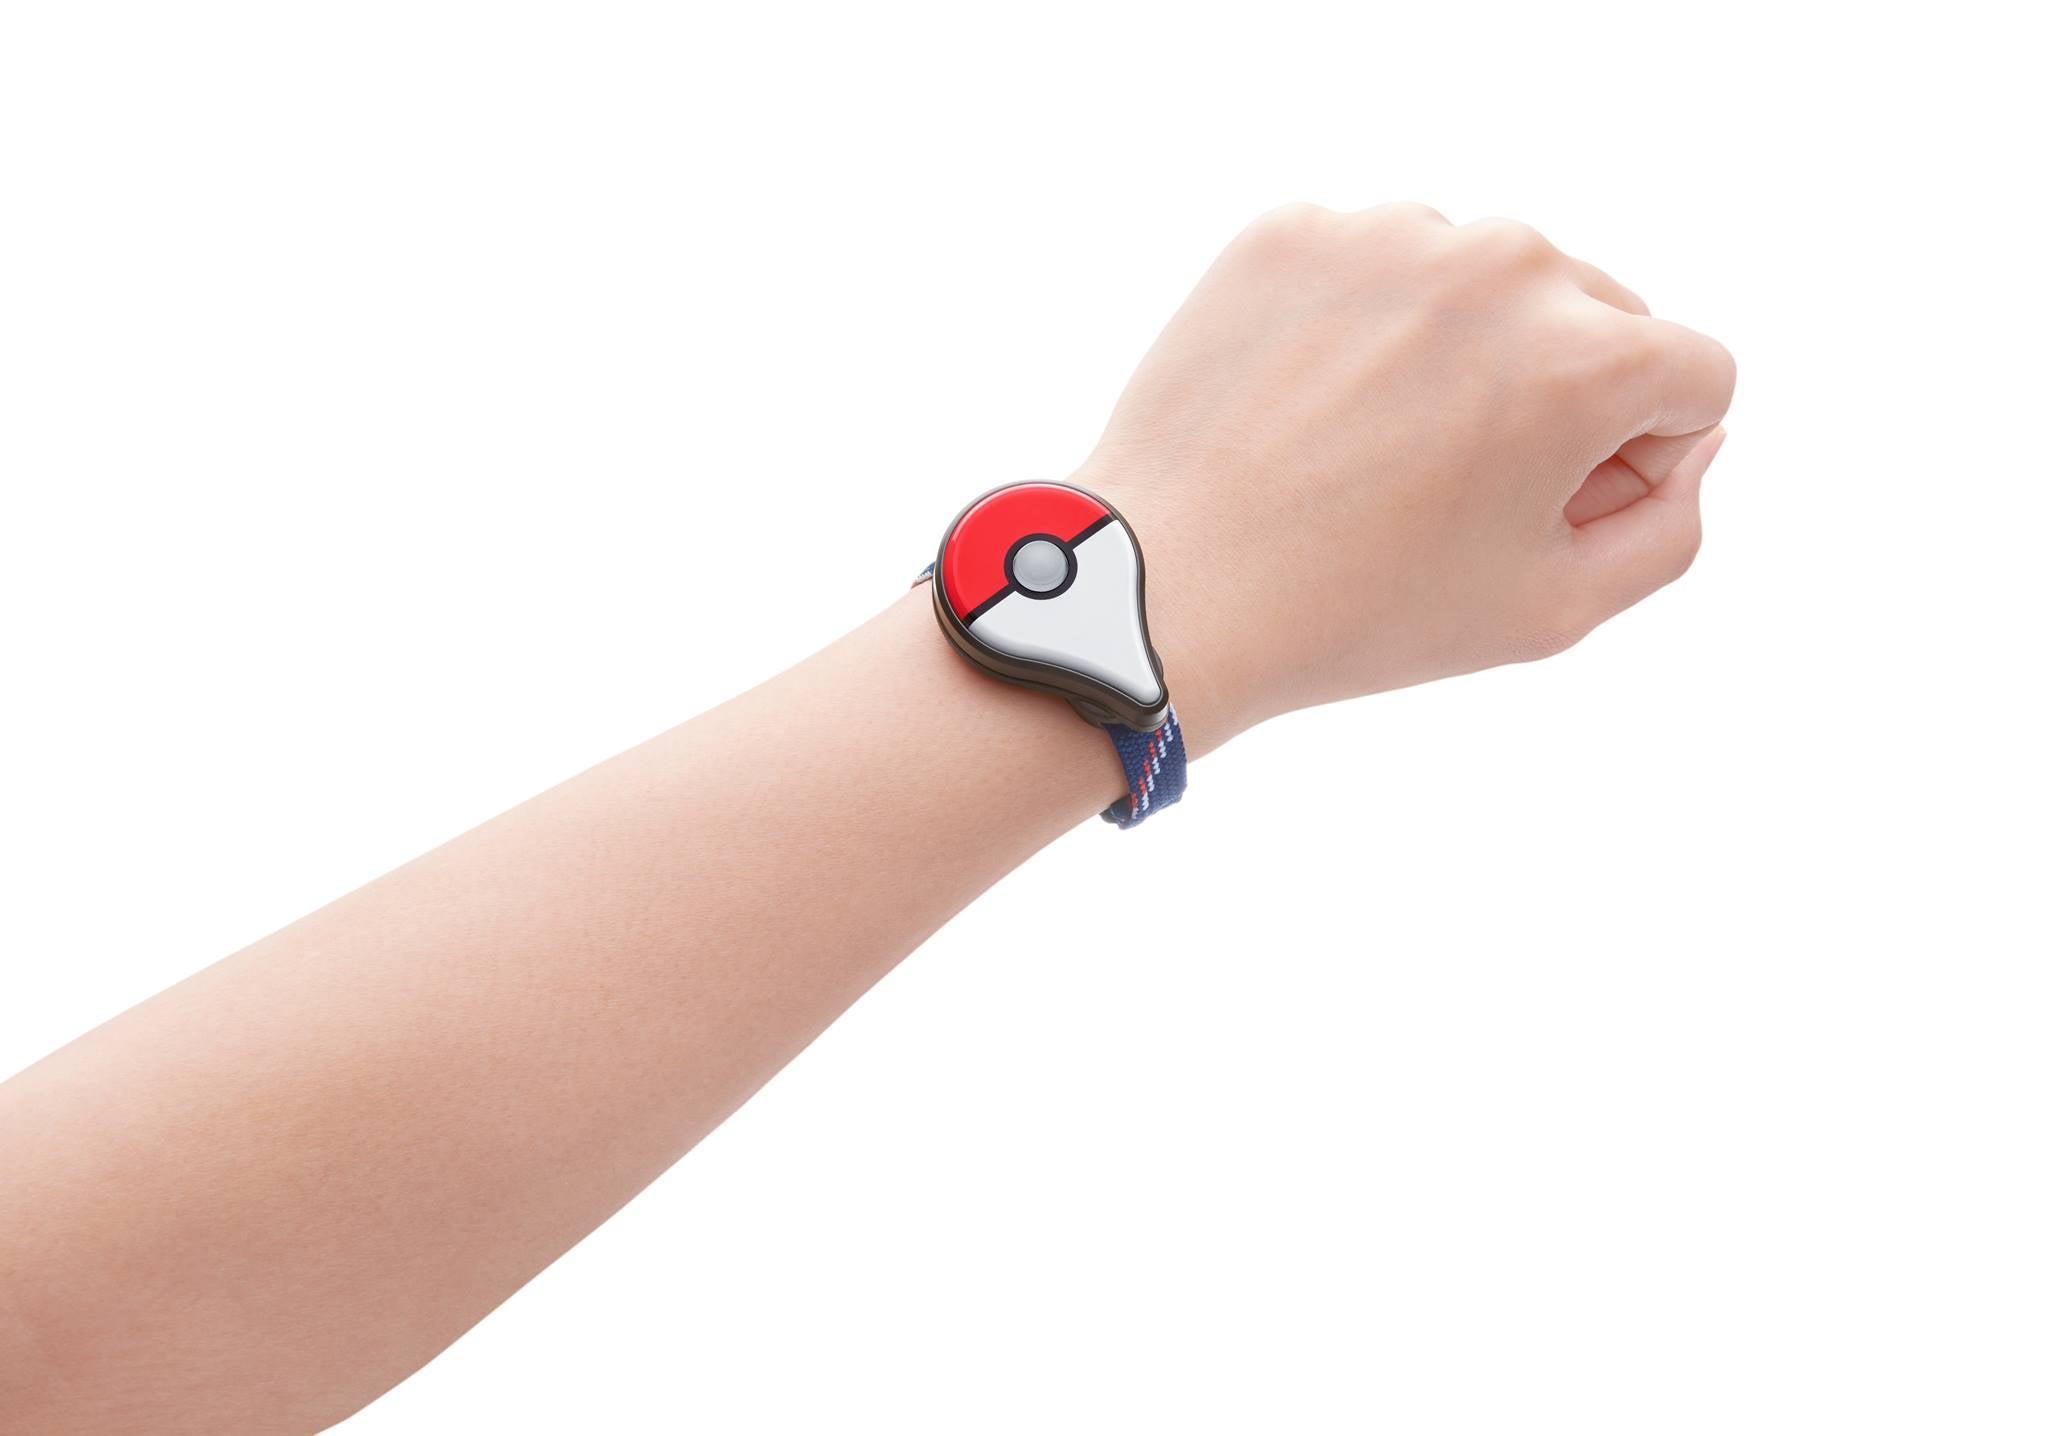 Nintendo's Wearable Pokémon Go Plus Will Be Available Next Week